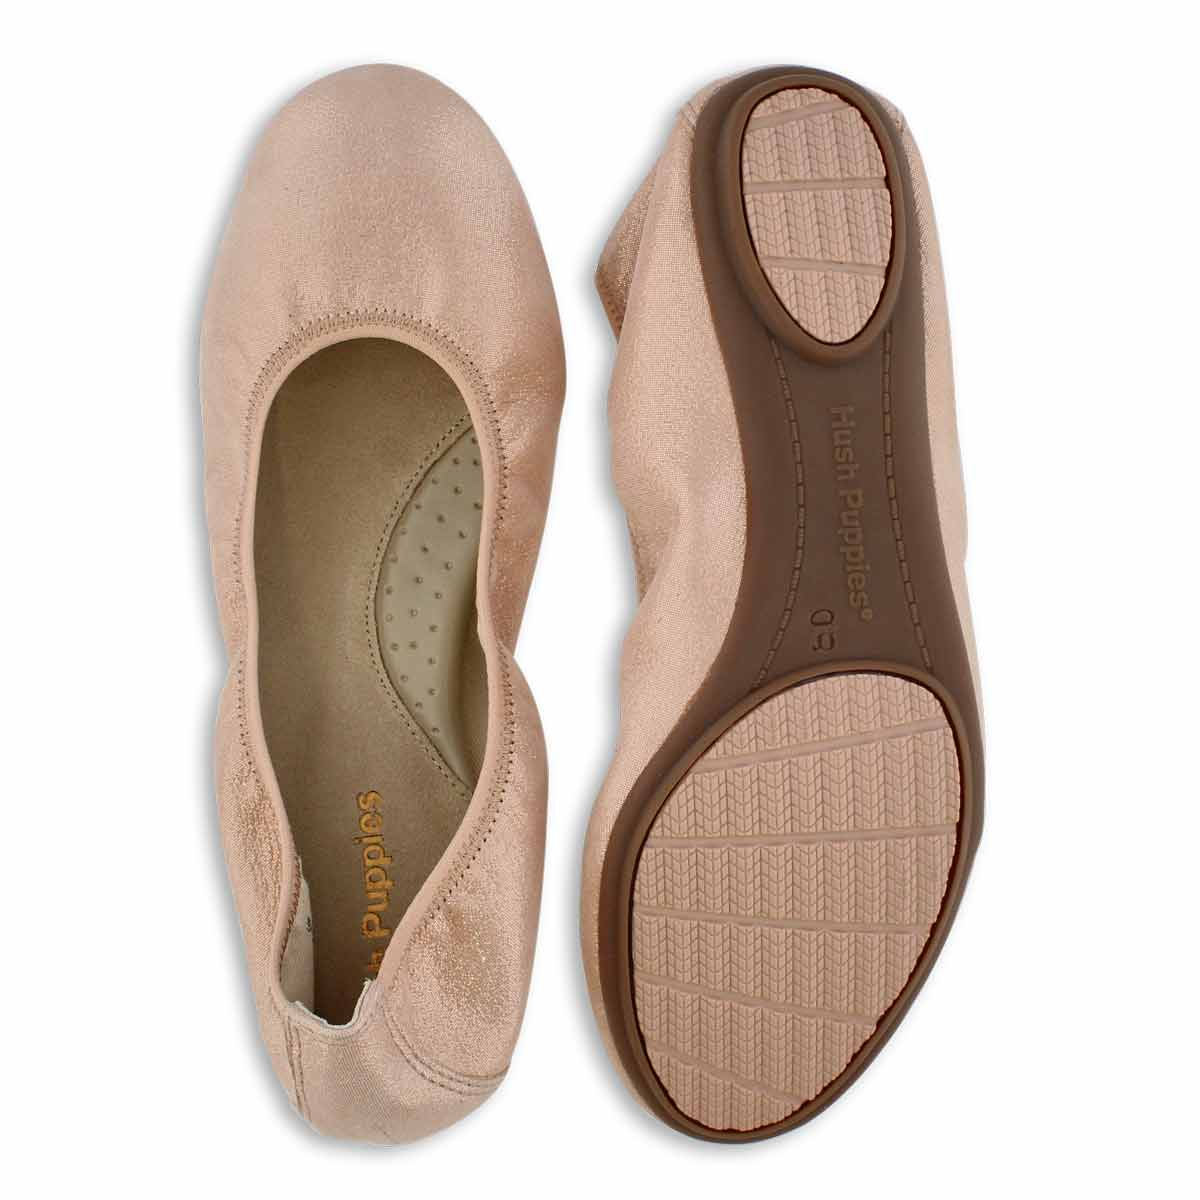 Lds Chaste Ballet pale pch leather flat